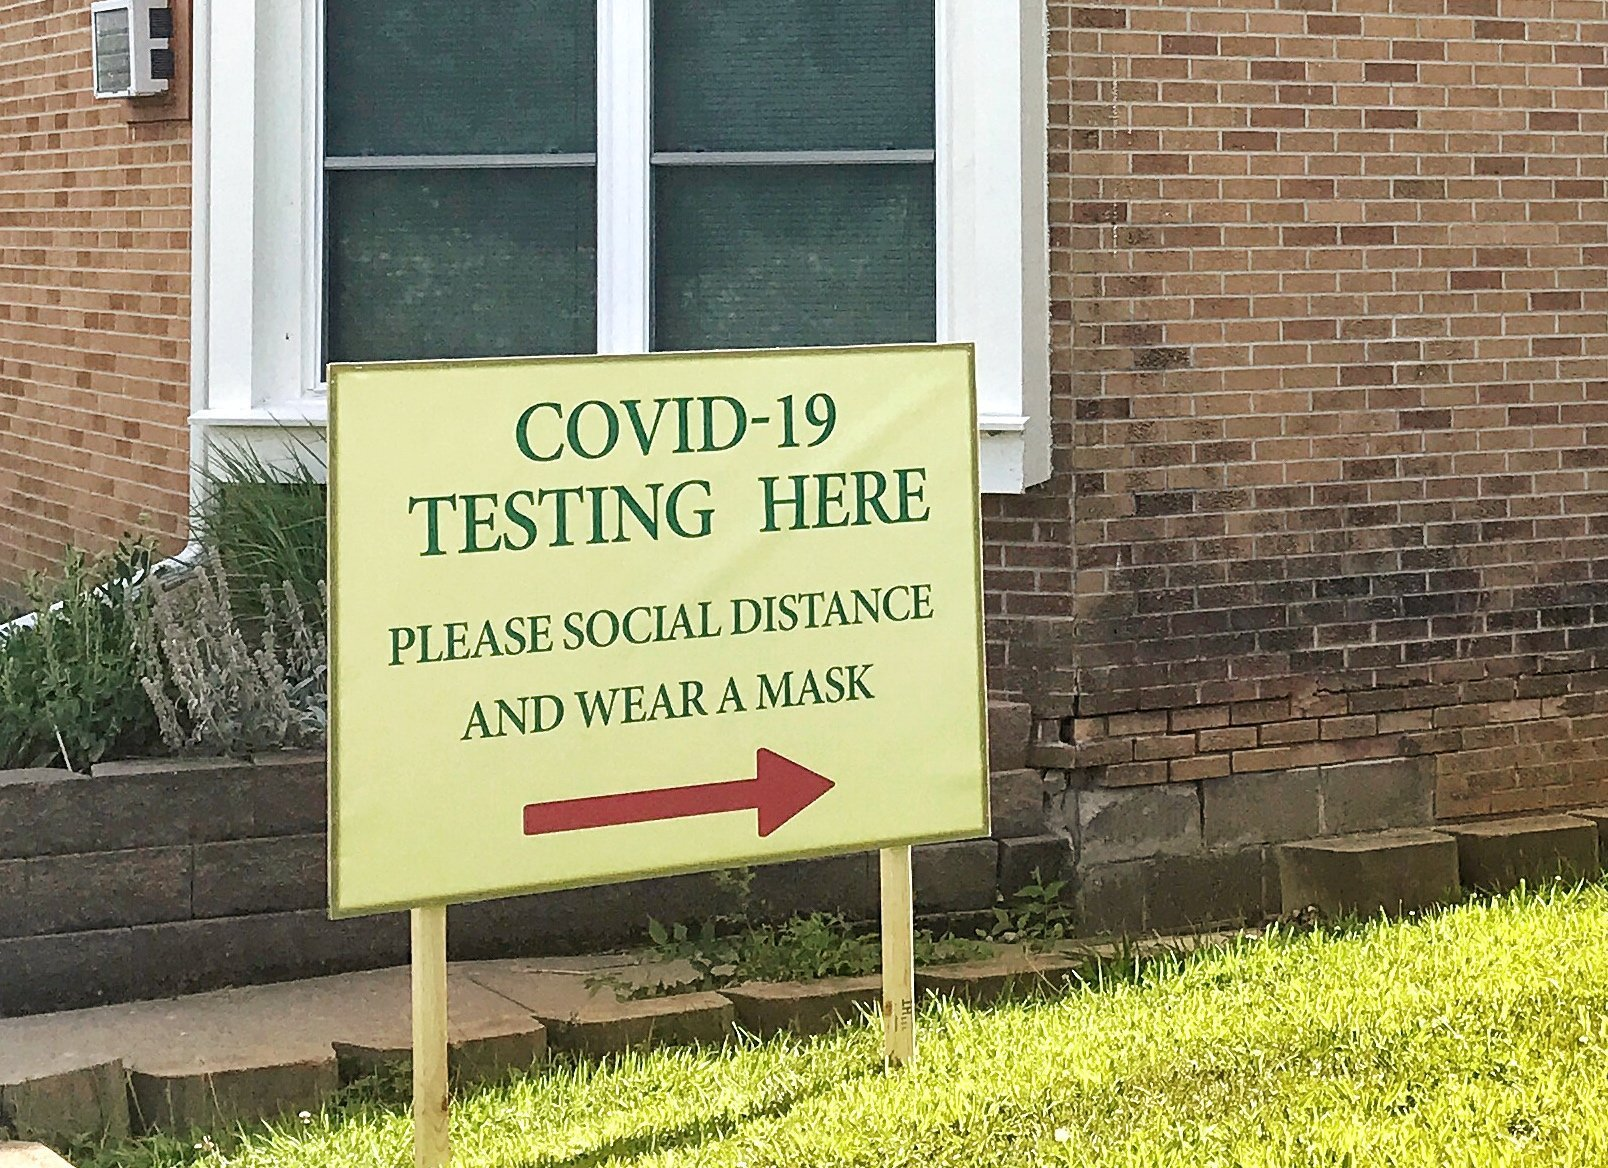 COVID-19 testing is done on all students when they arrive on campus